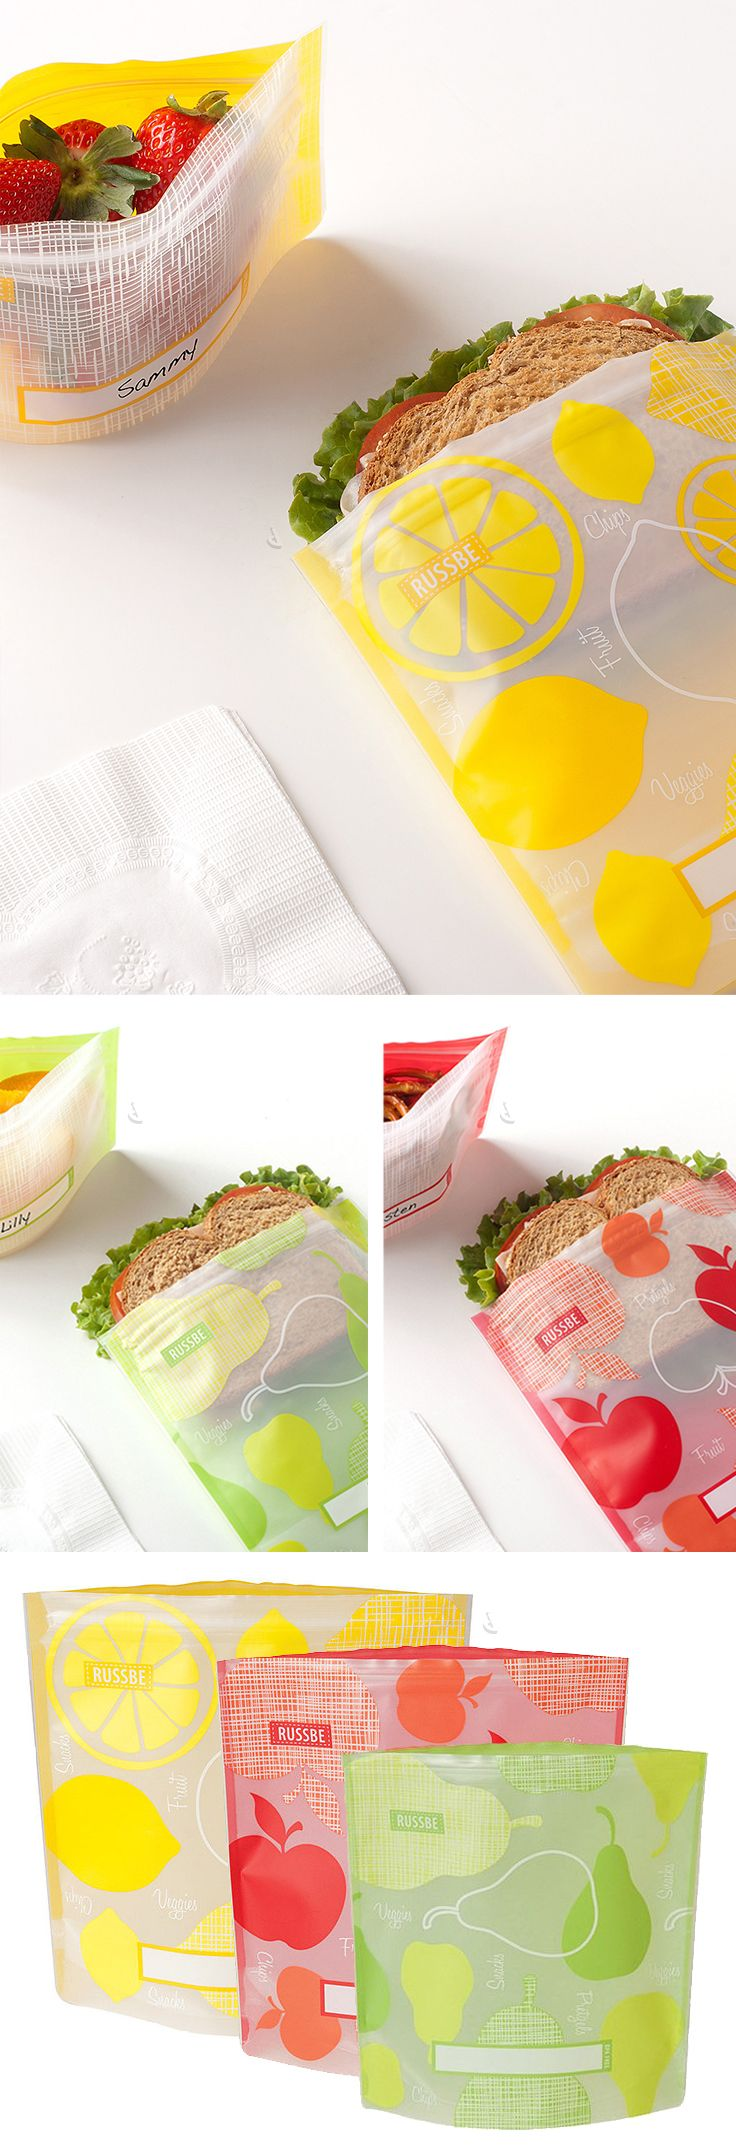 Reusable sandwich bag // go green for your lunch and snacks - environmentally friendly BPA-free